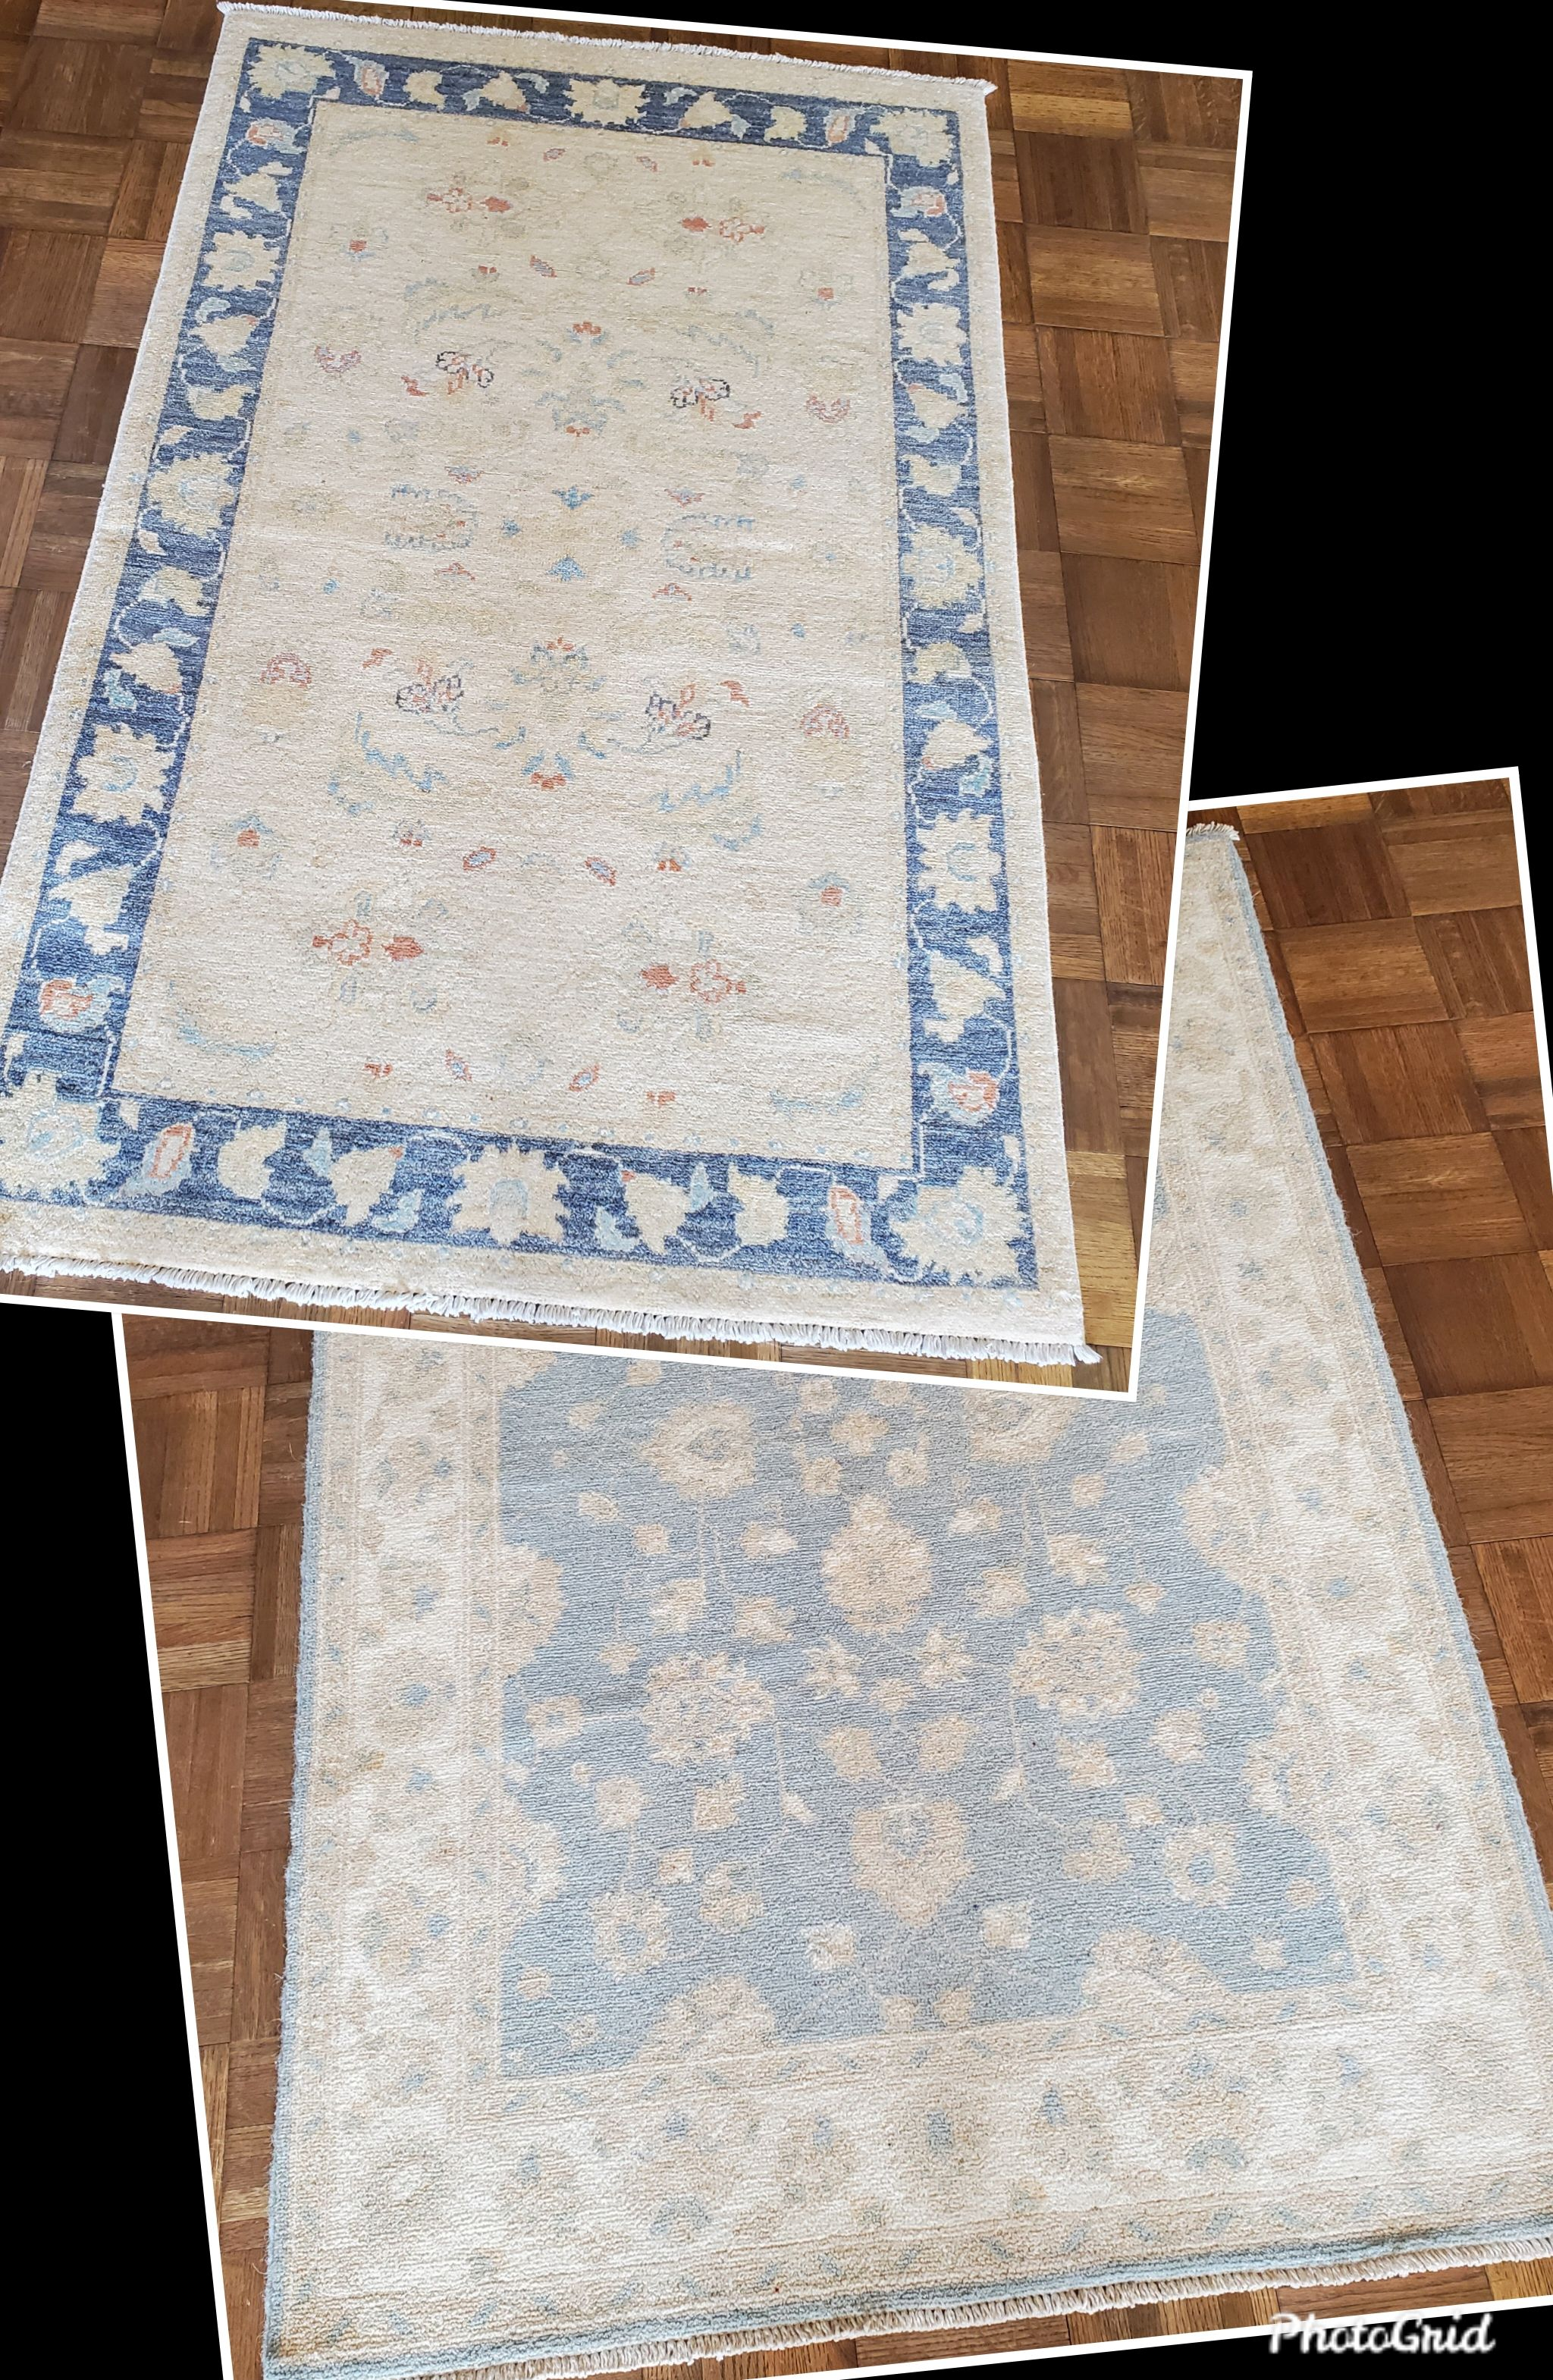 Vintage Fine Oushak 3x5 pieces!  all-natural, directly imported! $595 reduced from $1190! Grab them!  Call 205-870-4444 or drop by if it's for you!  Please share! 🙋♀️  #nilipourorientalrugs #MayDayDeal #familybusiness #since1972 #fullservice #shoplocal #happycustomer #artyoucantreadon #orientalrug #rug #arearug #naturalfibers #wholesaleprices #directimporting #affordableluxury #functionalrug #practicalrug #appeal #qualityrug #investment #conversationpiece #Lifestyle #rugcleaning #orientalrugcl